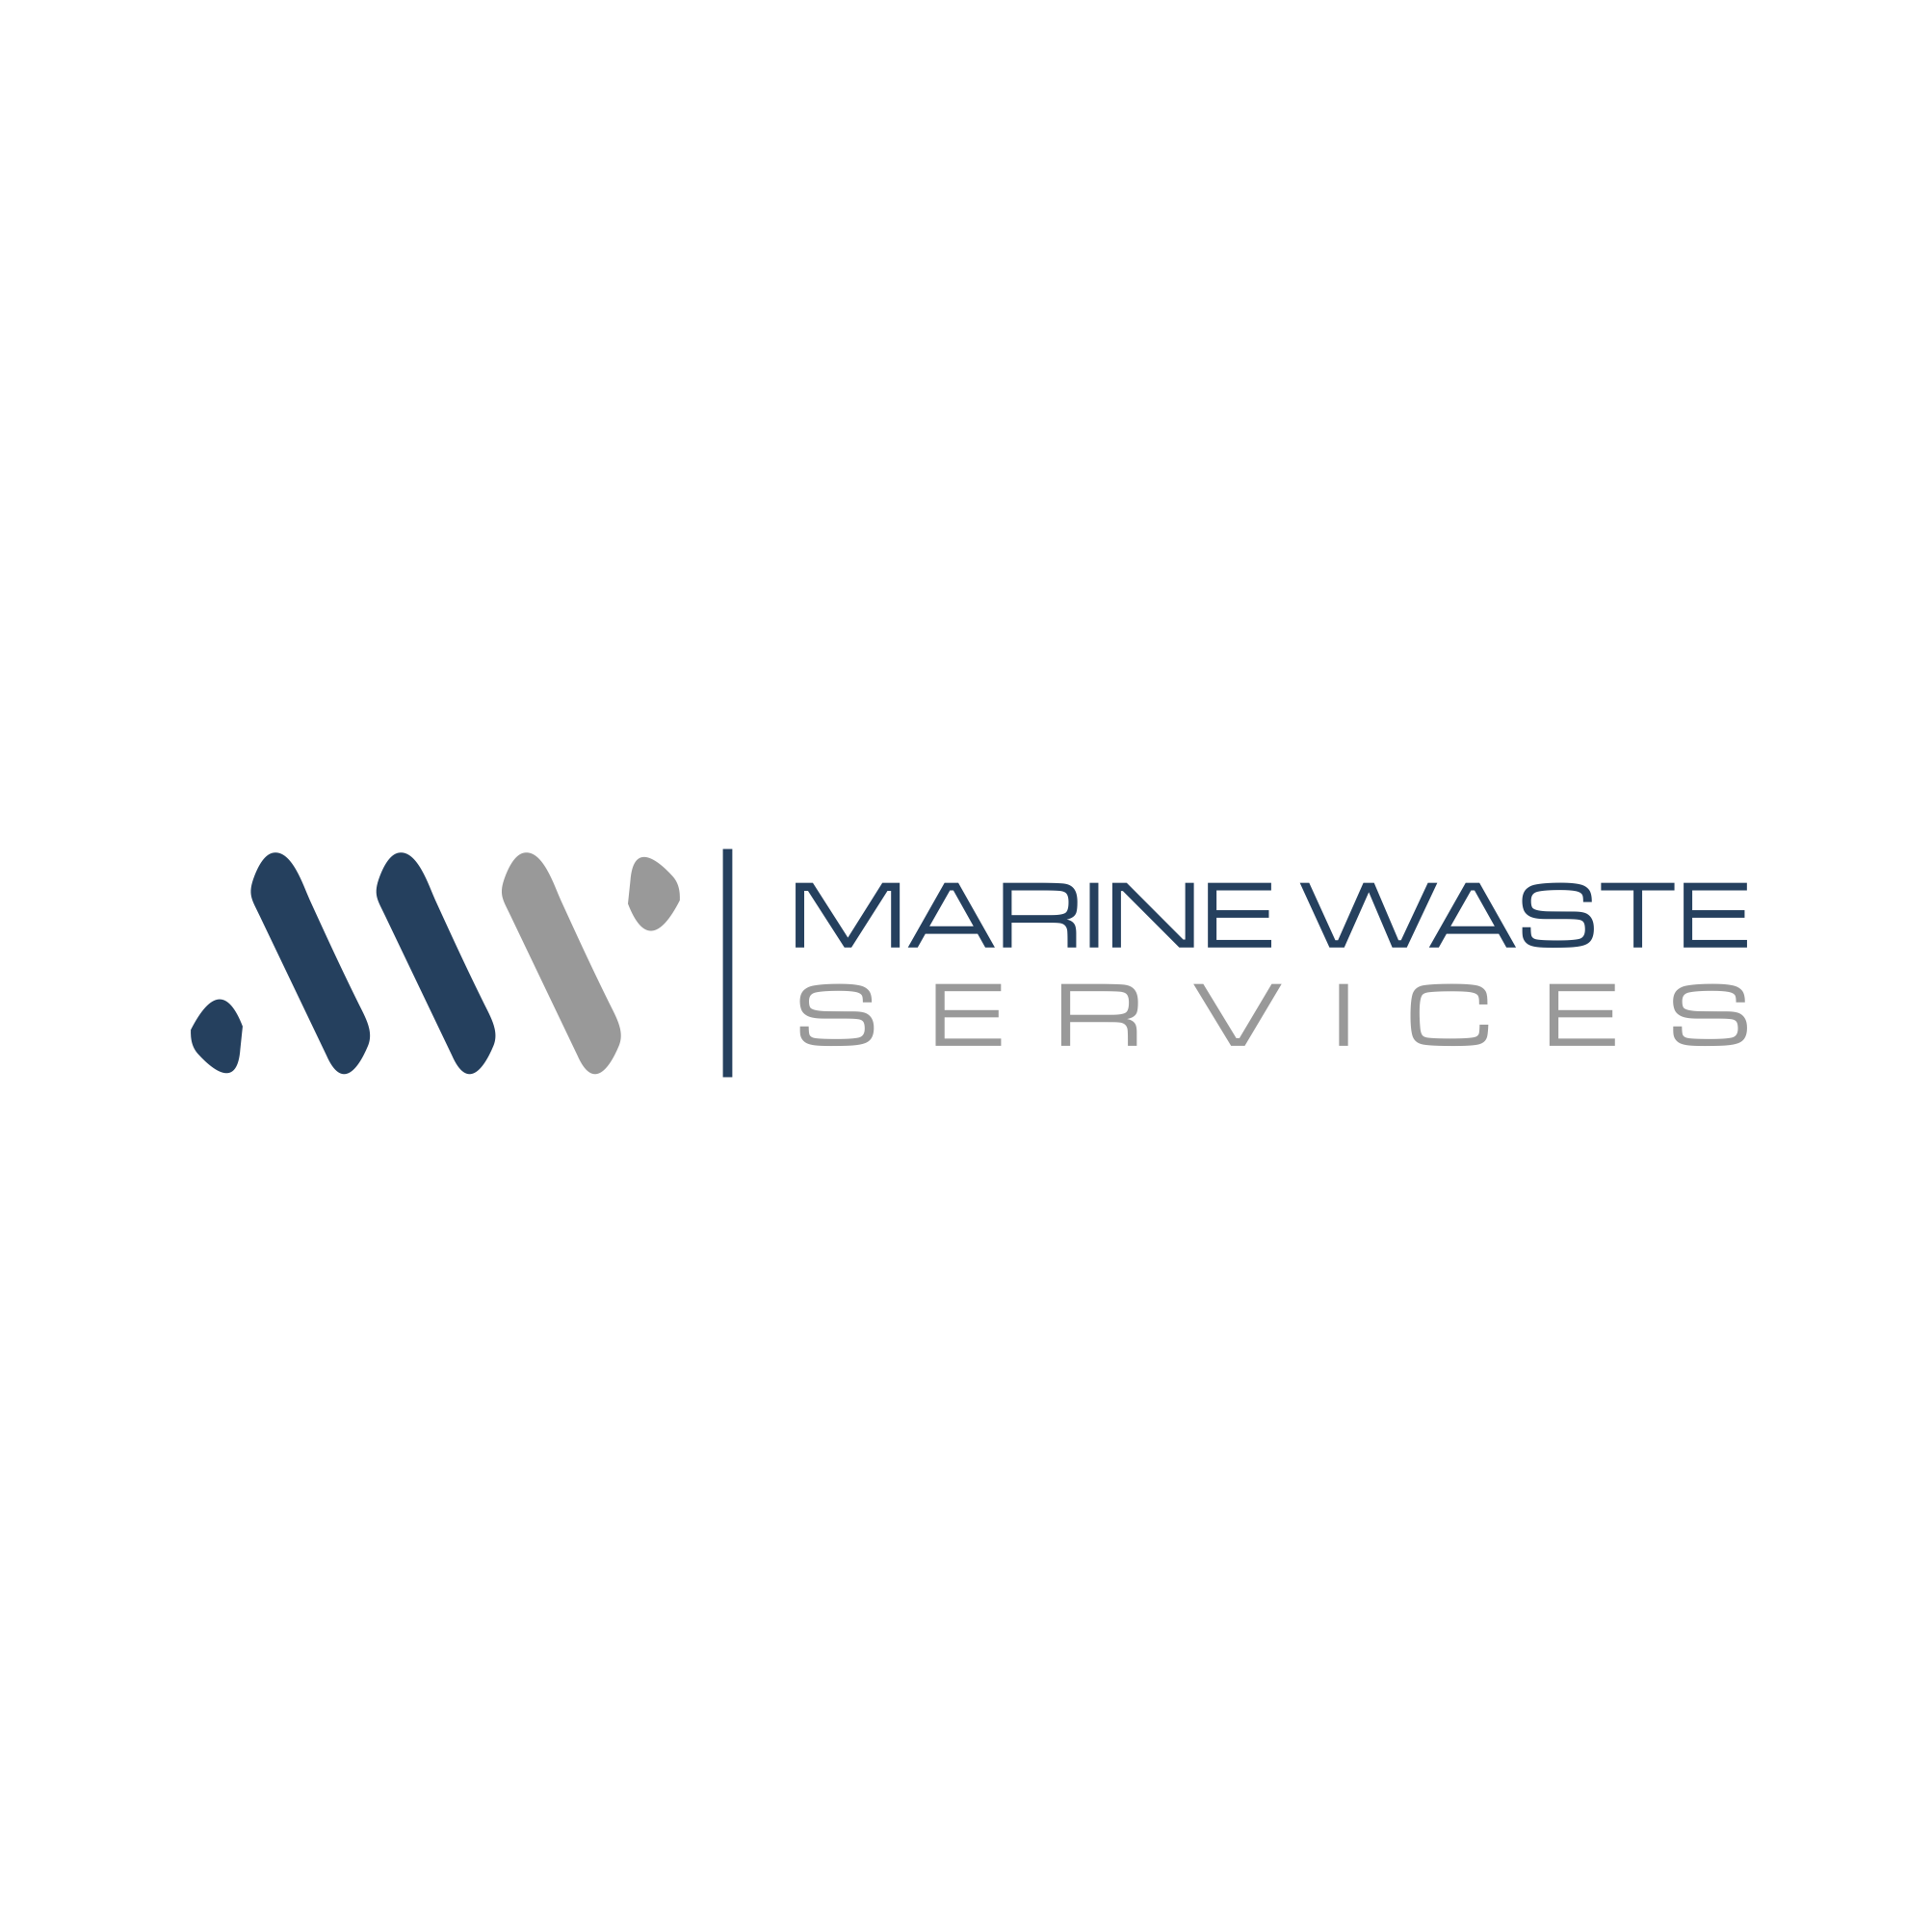 Clean quick logo for company handling regulated garbage